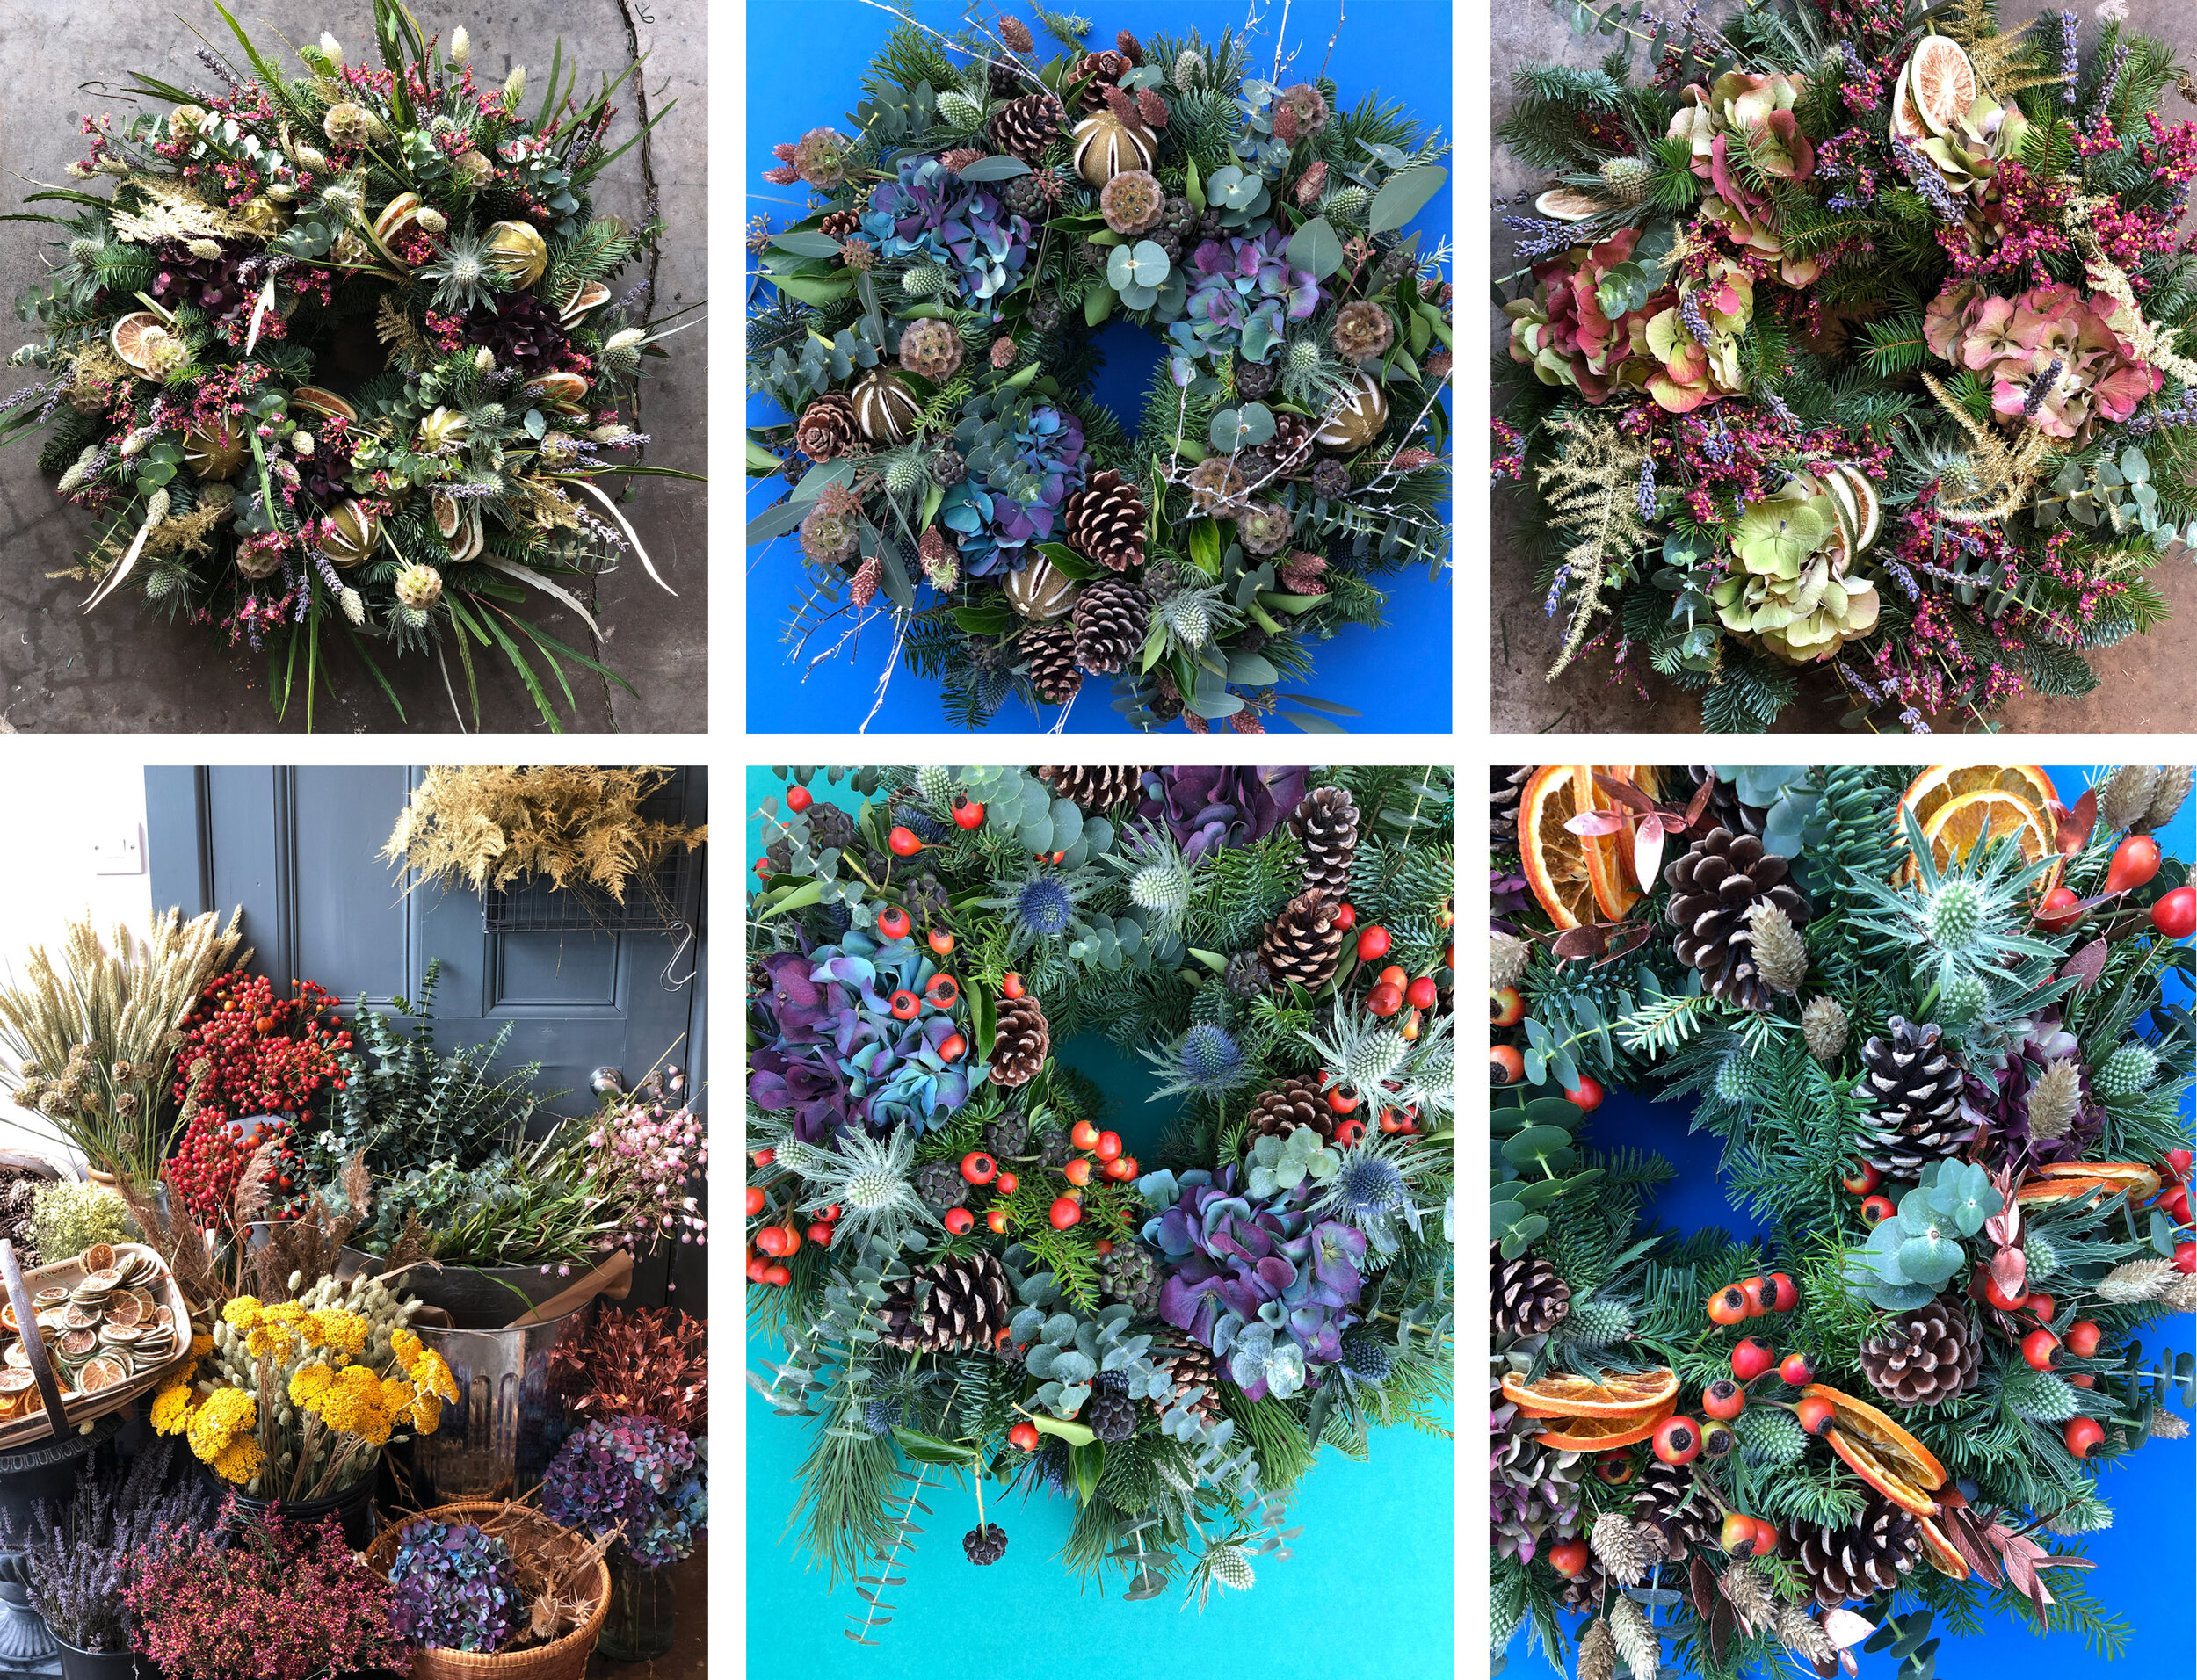 Christmas Wreath Making - Learn how to make a large door wreath this December. All abilities welcome!